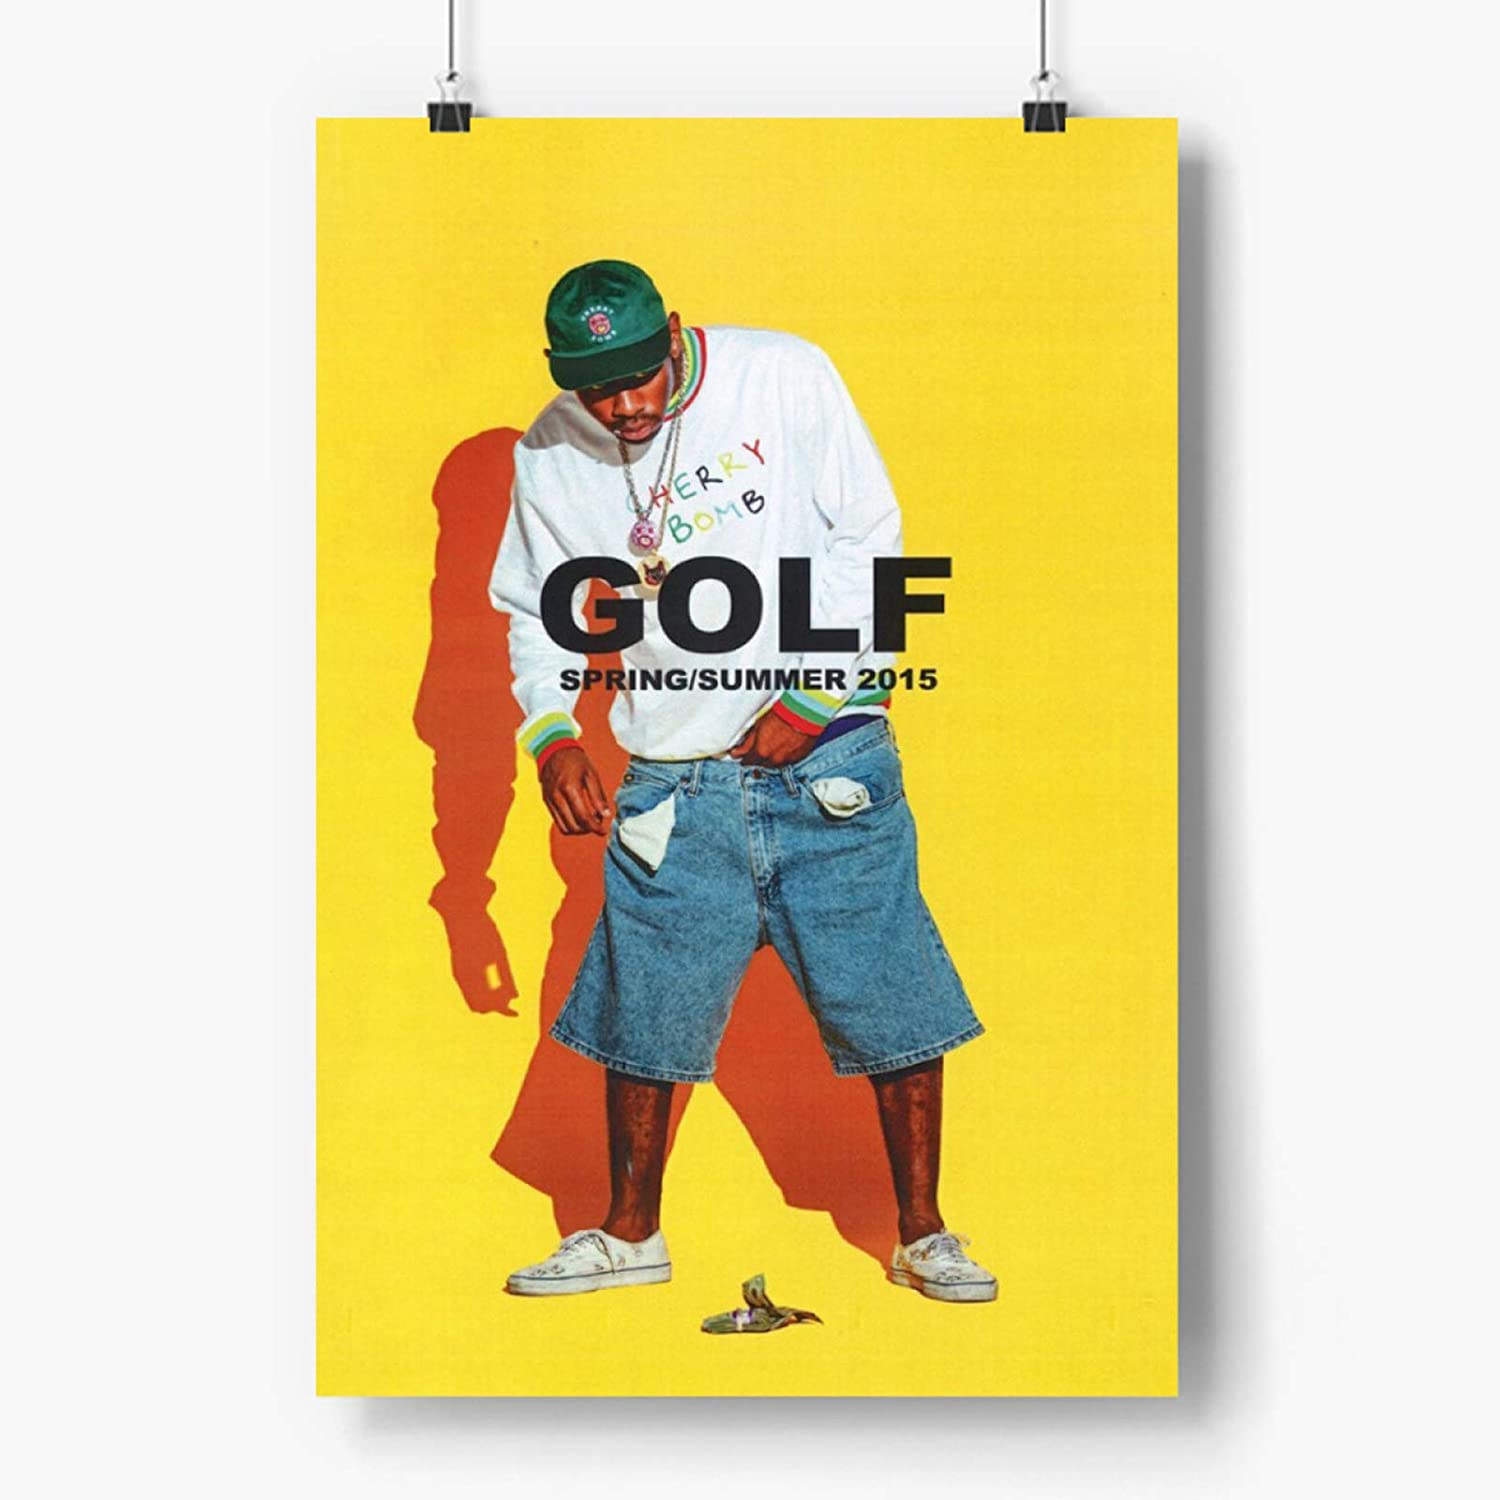 Tyler The Creator Posters 18×24 inches Unframed Go Awesome Tyler The Creator Posters for Home Wall Decor, Dorm Posters for Guys